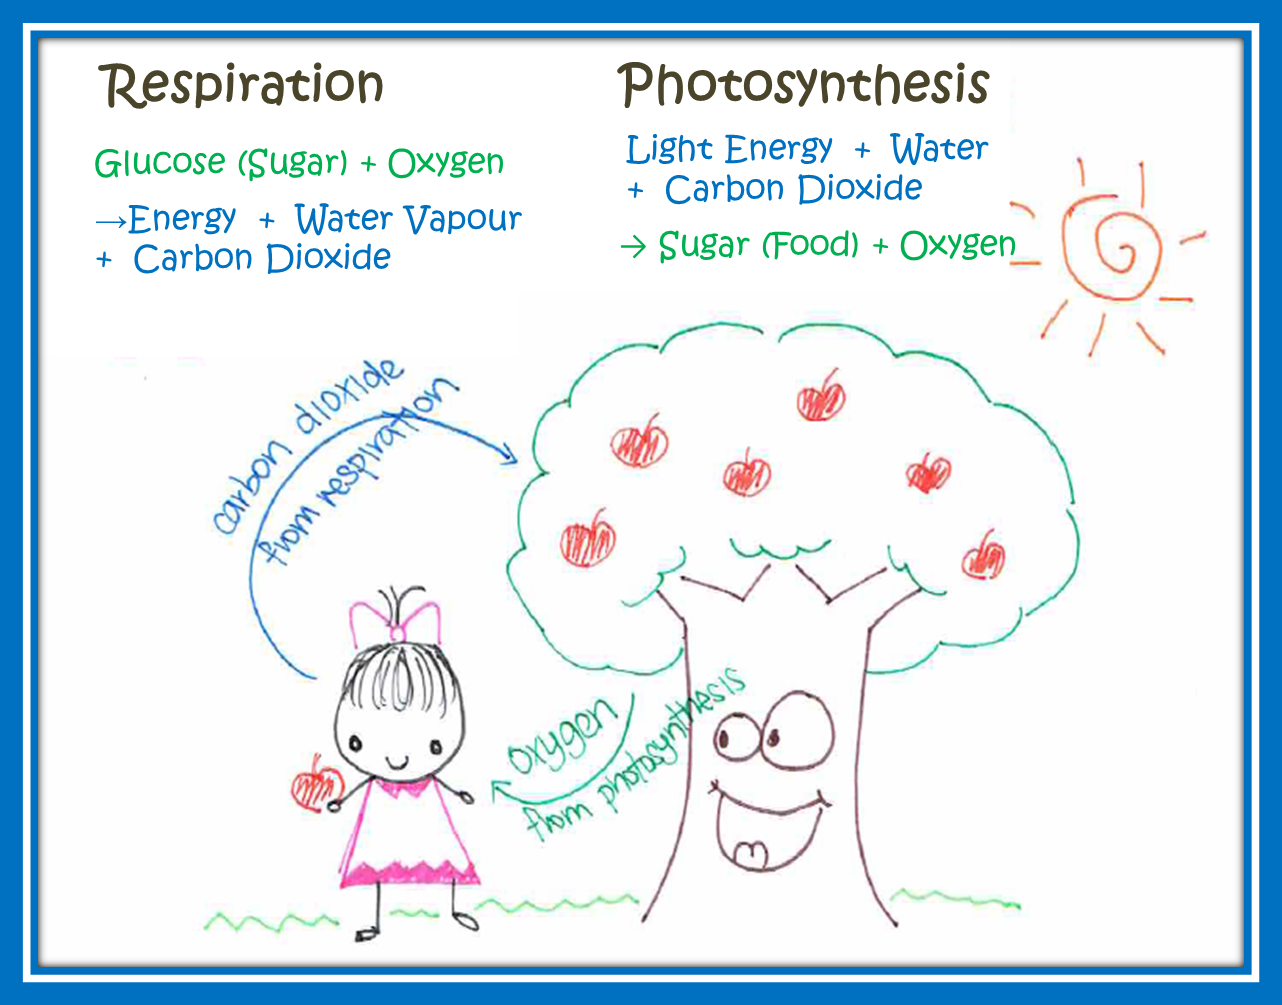 Phtosynthesis and cellular respiration